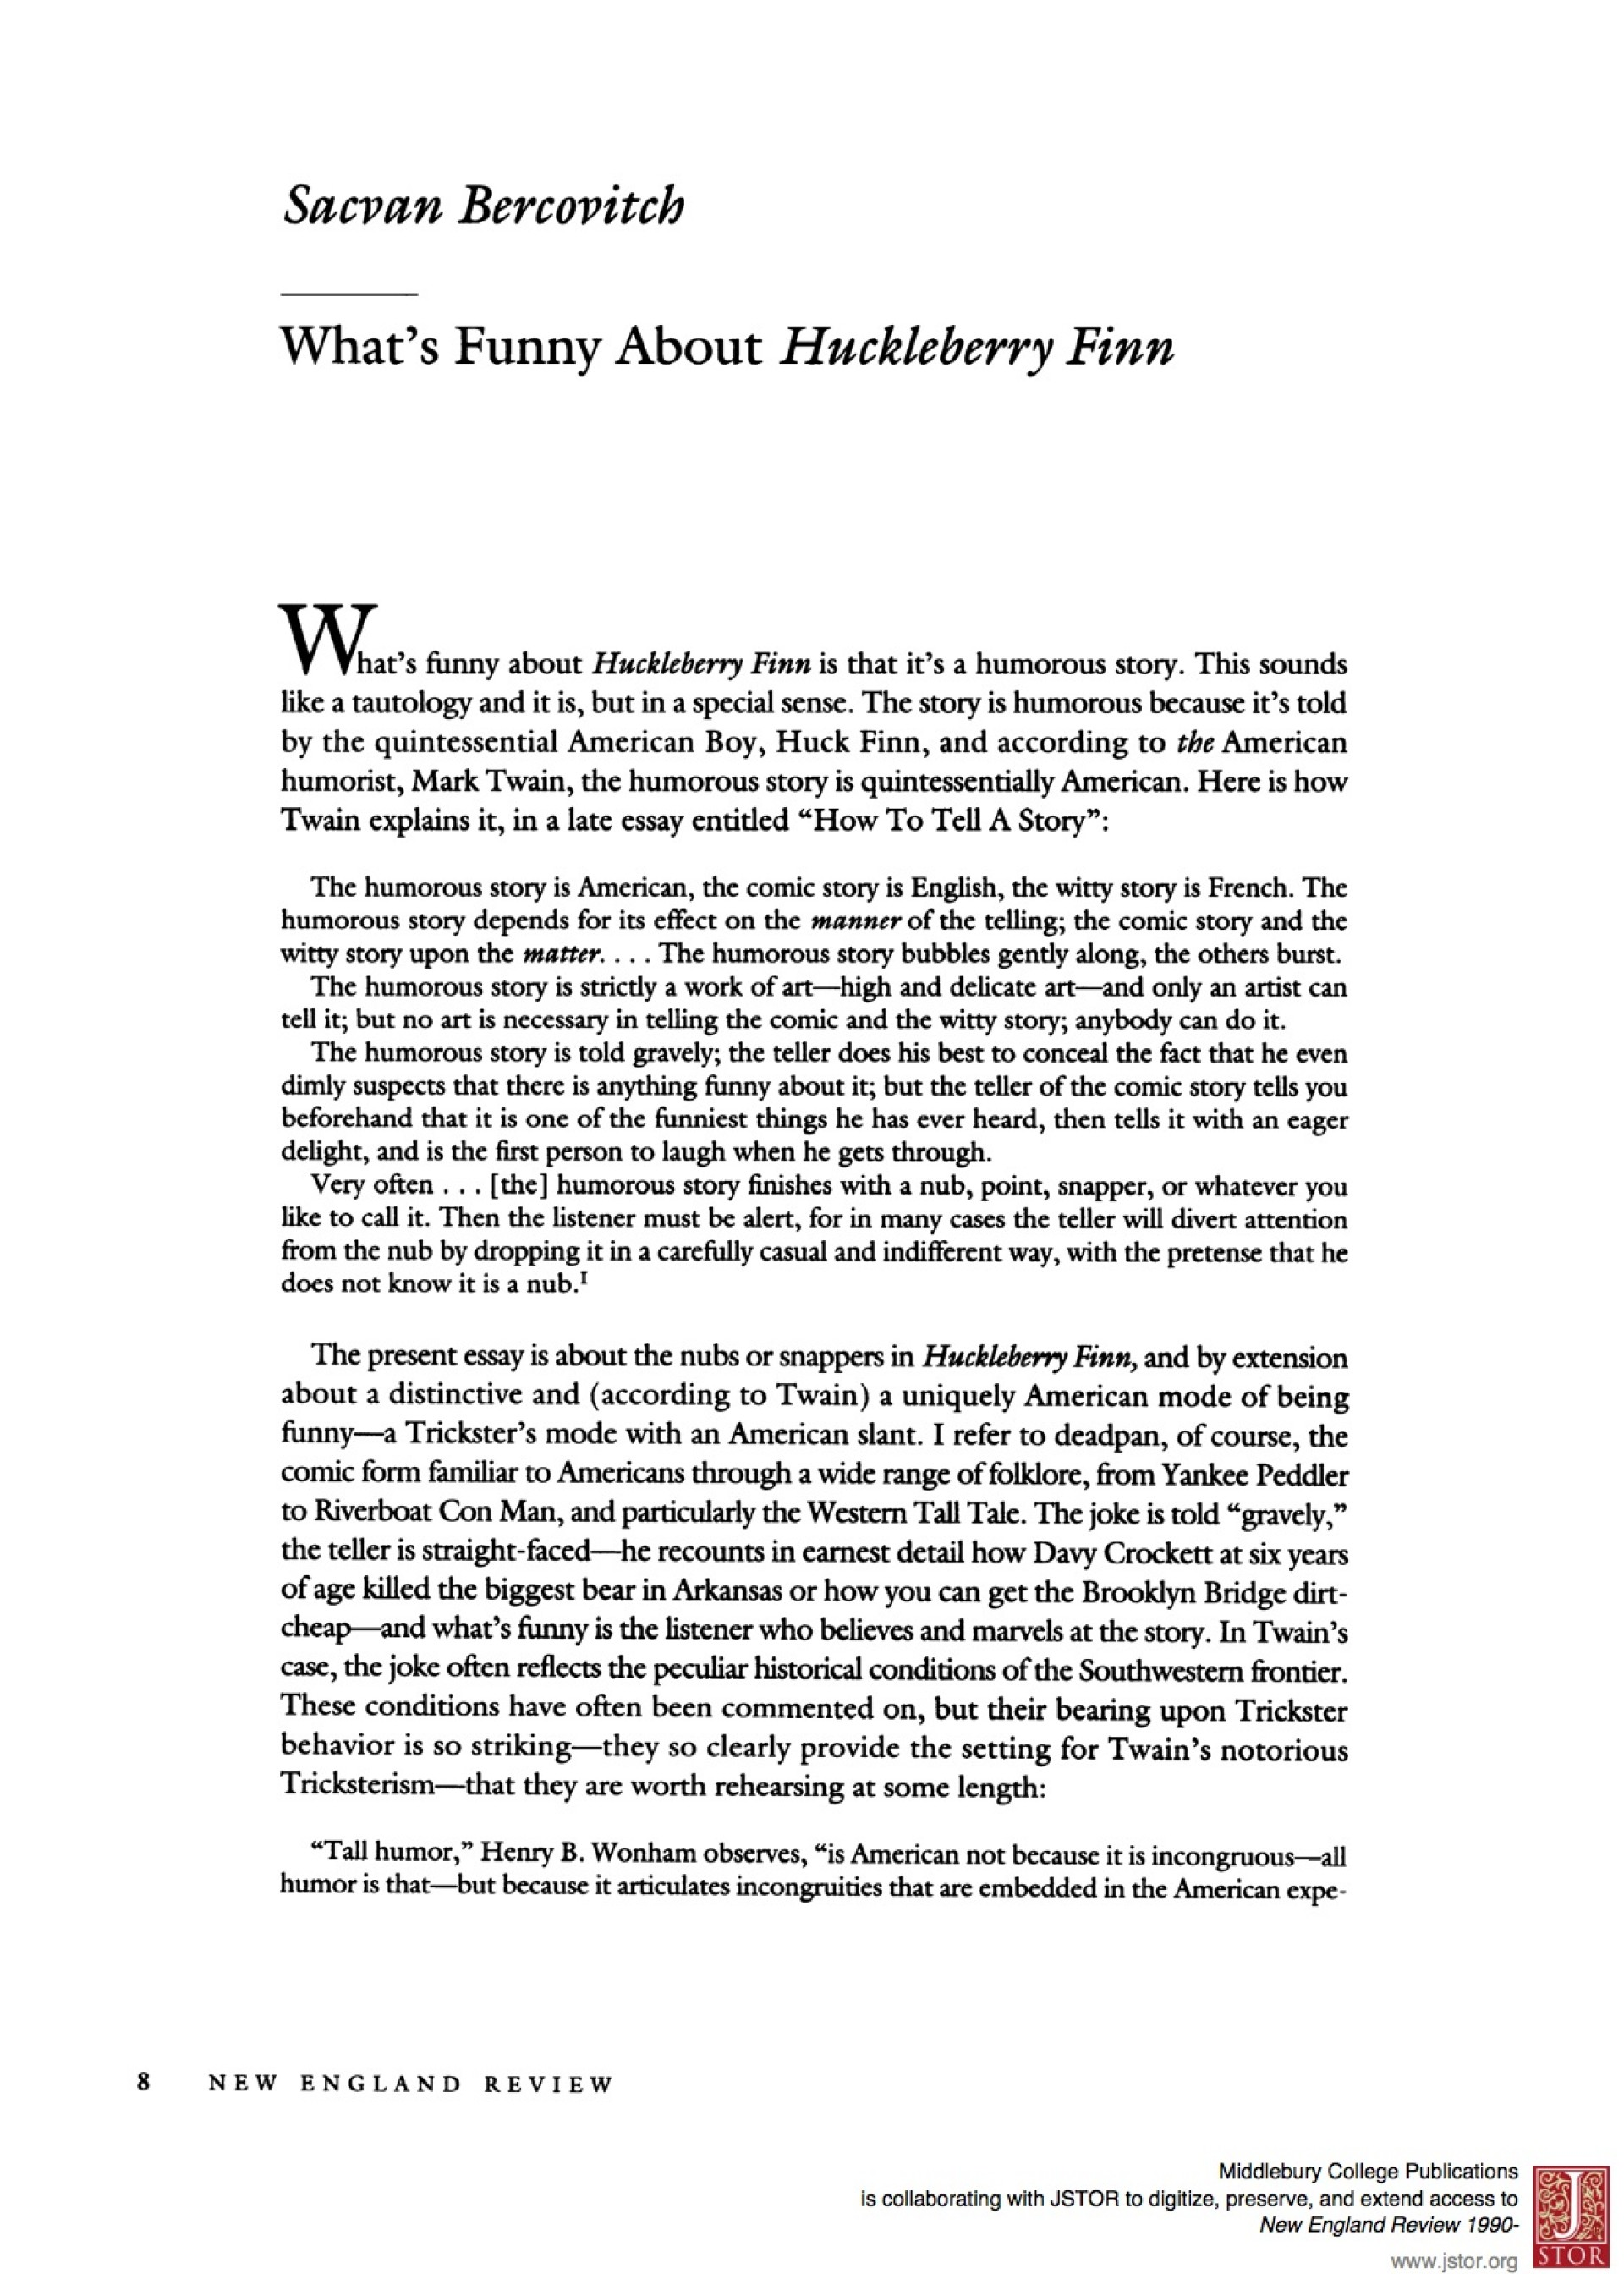 001 Huckleberry Finn Essay Example Phenomenal Morality Huck Discussion Questions Chapters 1-5 1920